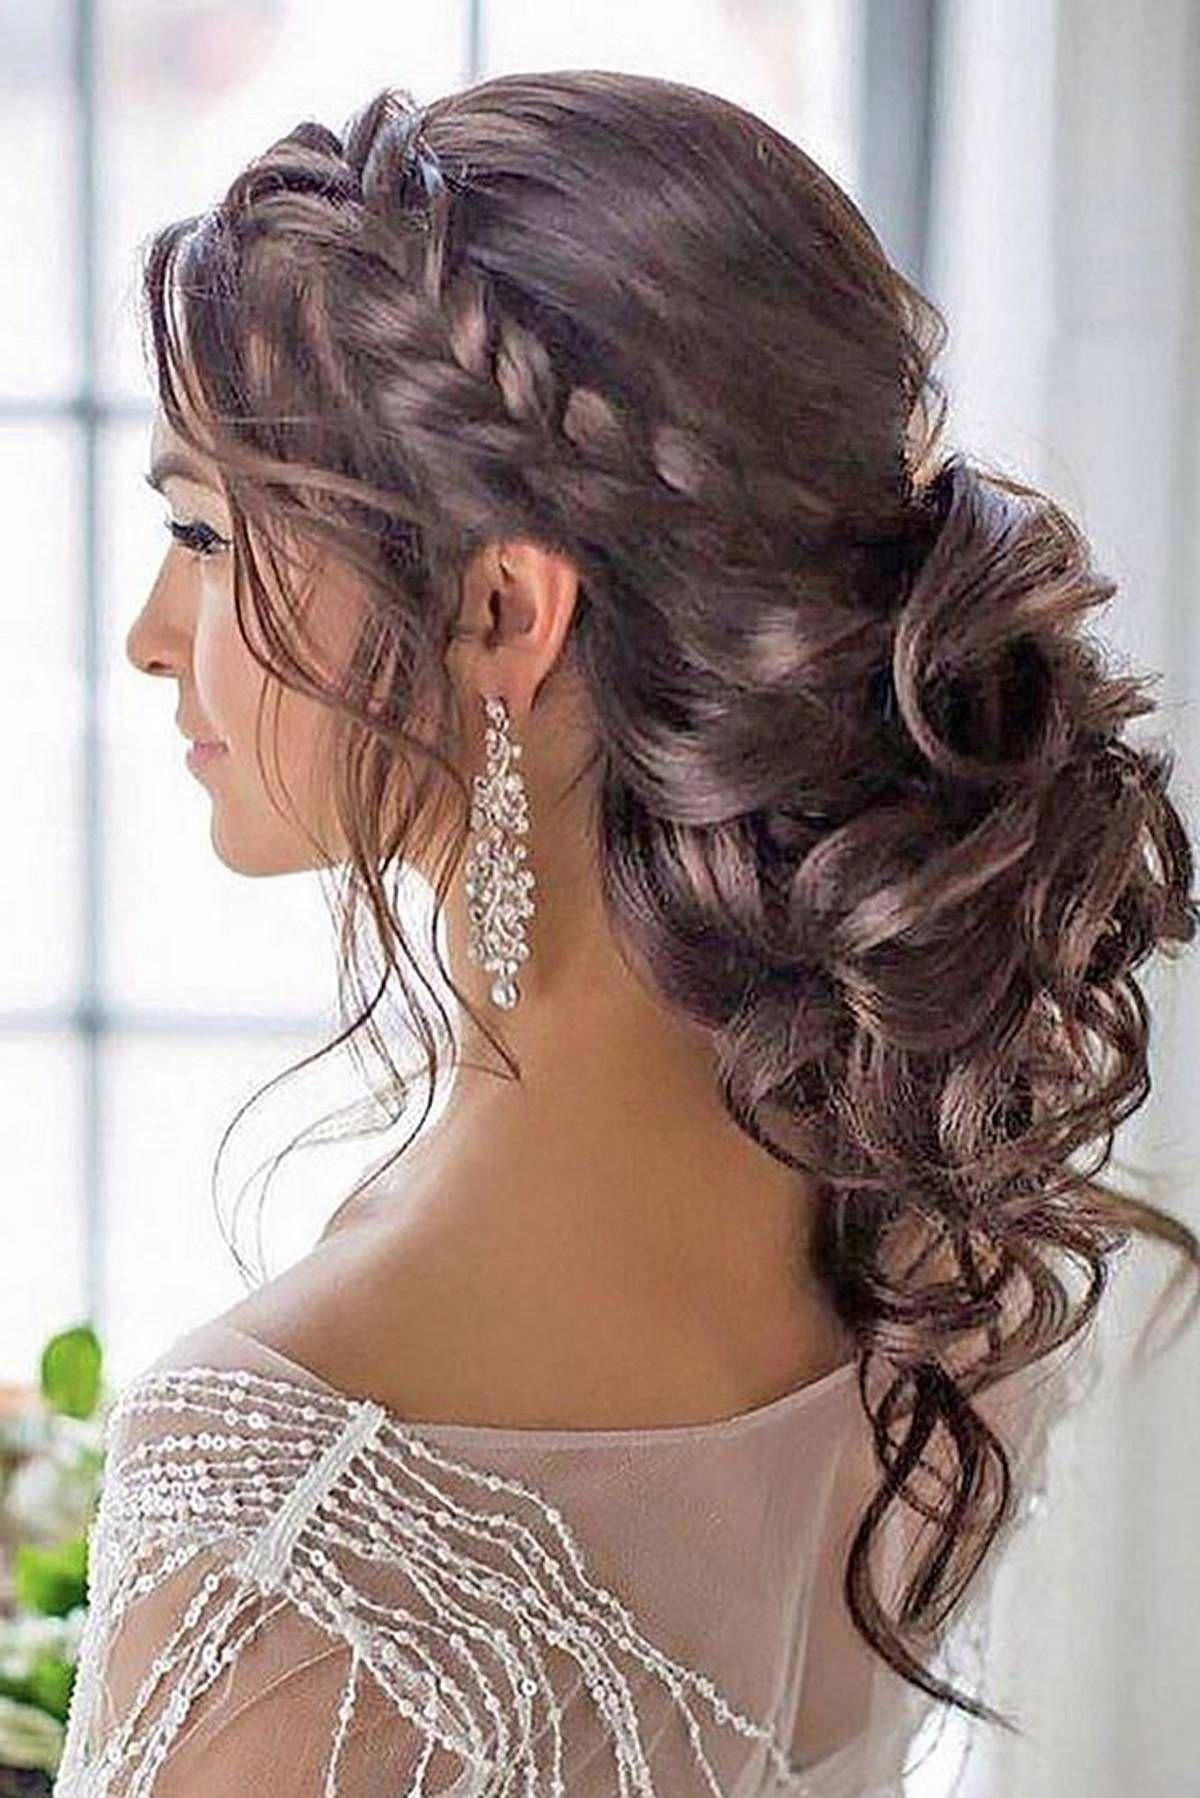 Hairstyles Diy And Tutorial For All Hair Lengths 076 Fashion